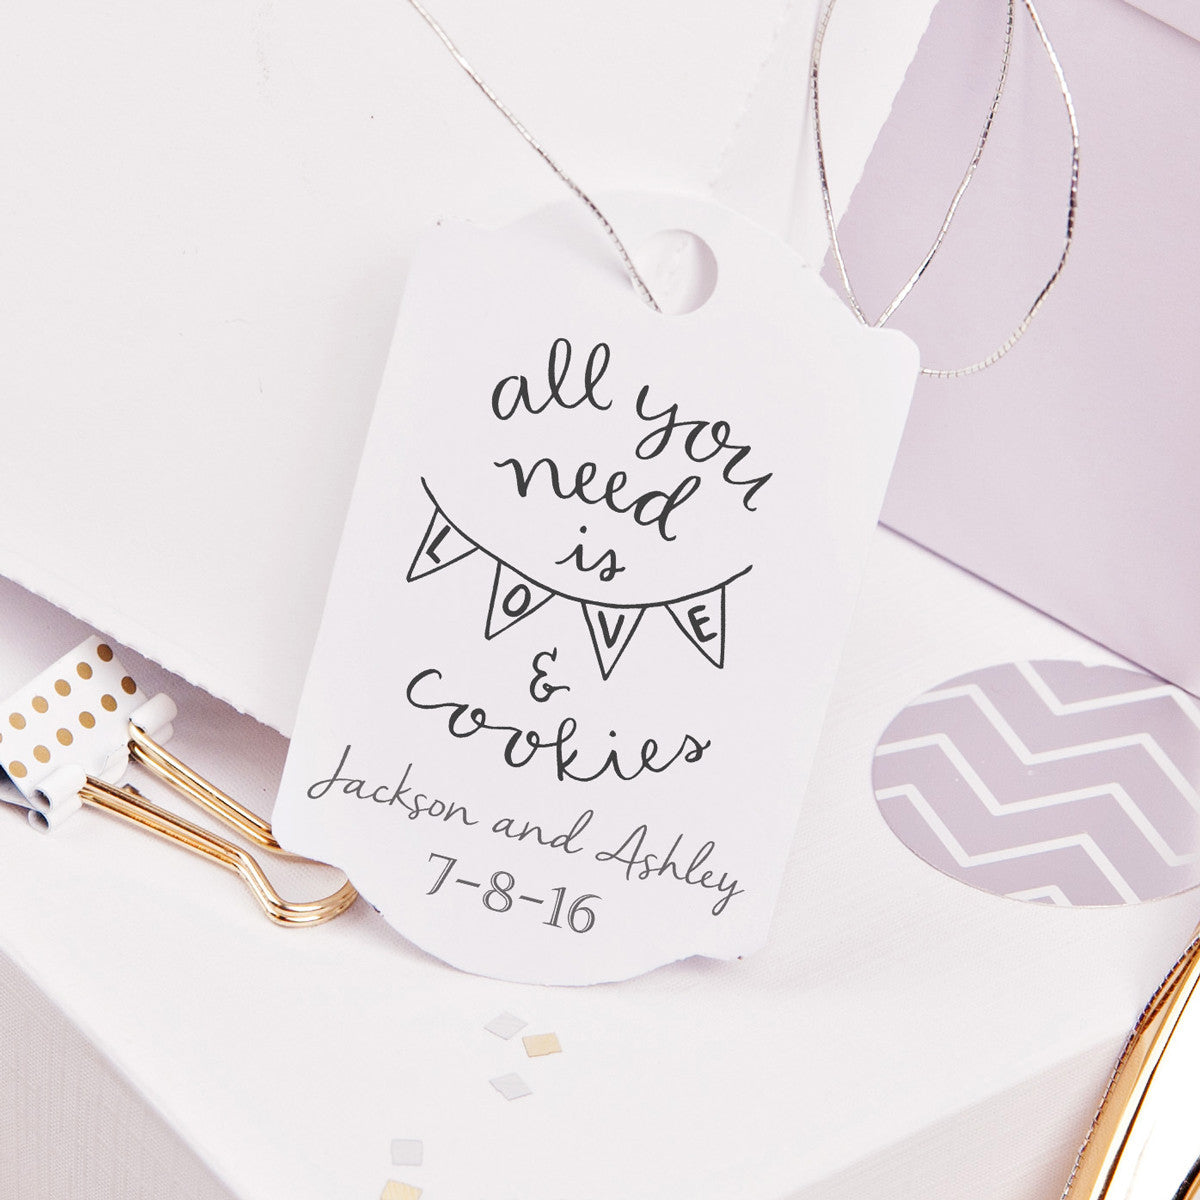 Love Cookies Jackson Ashley Wedding Favor Stamp Stamp Out